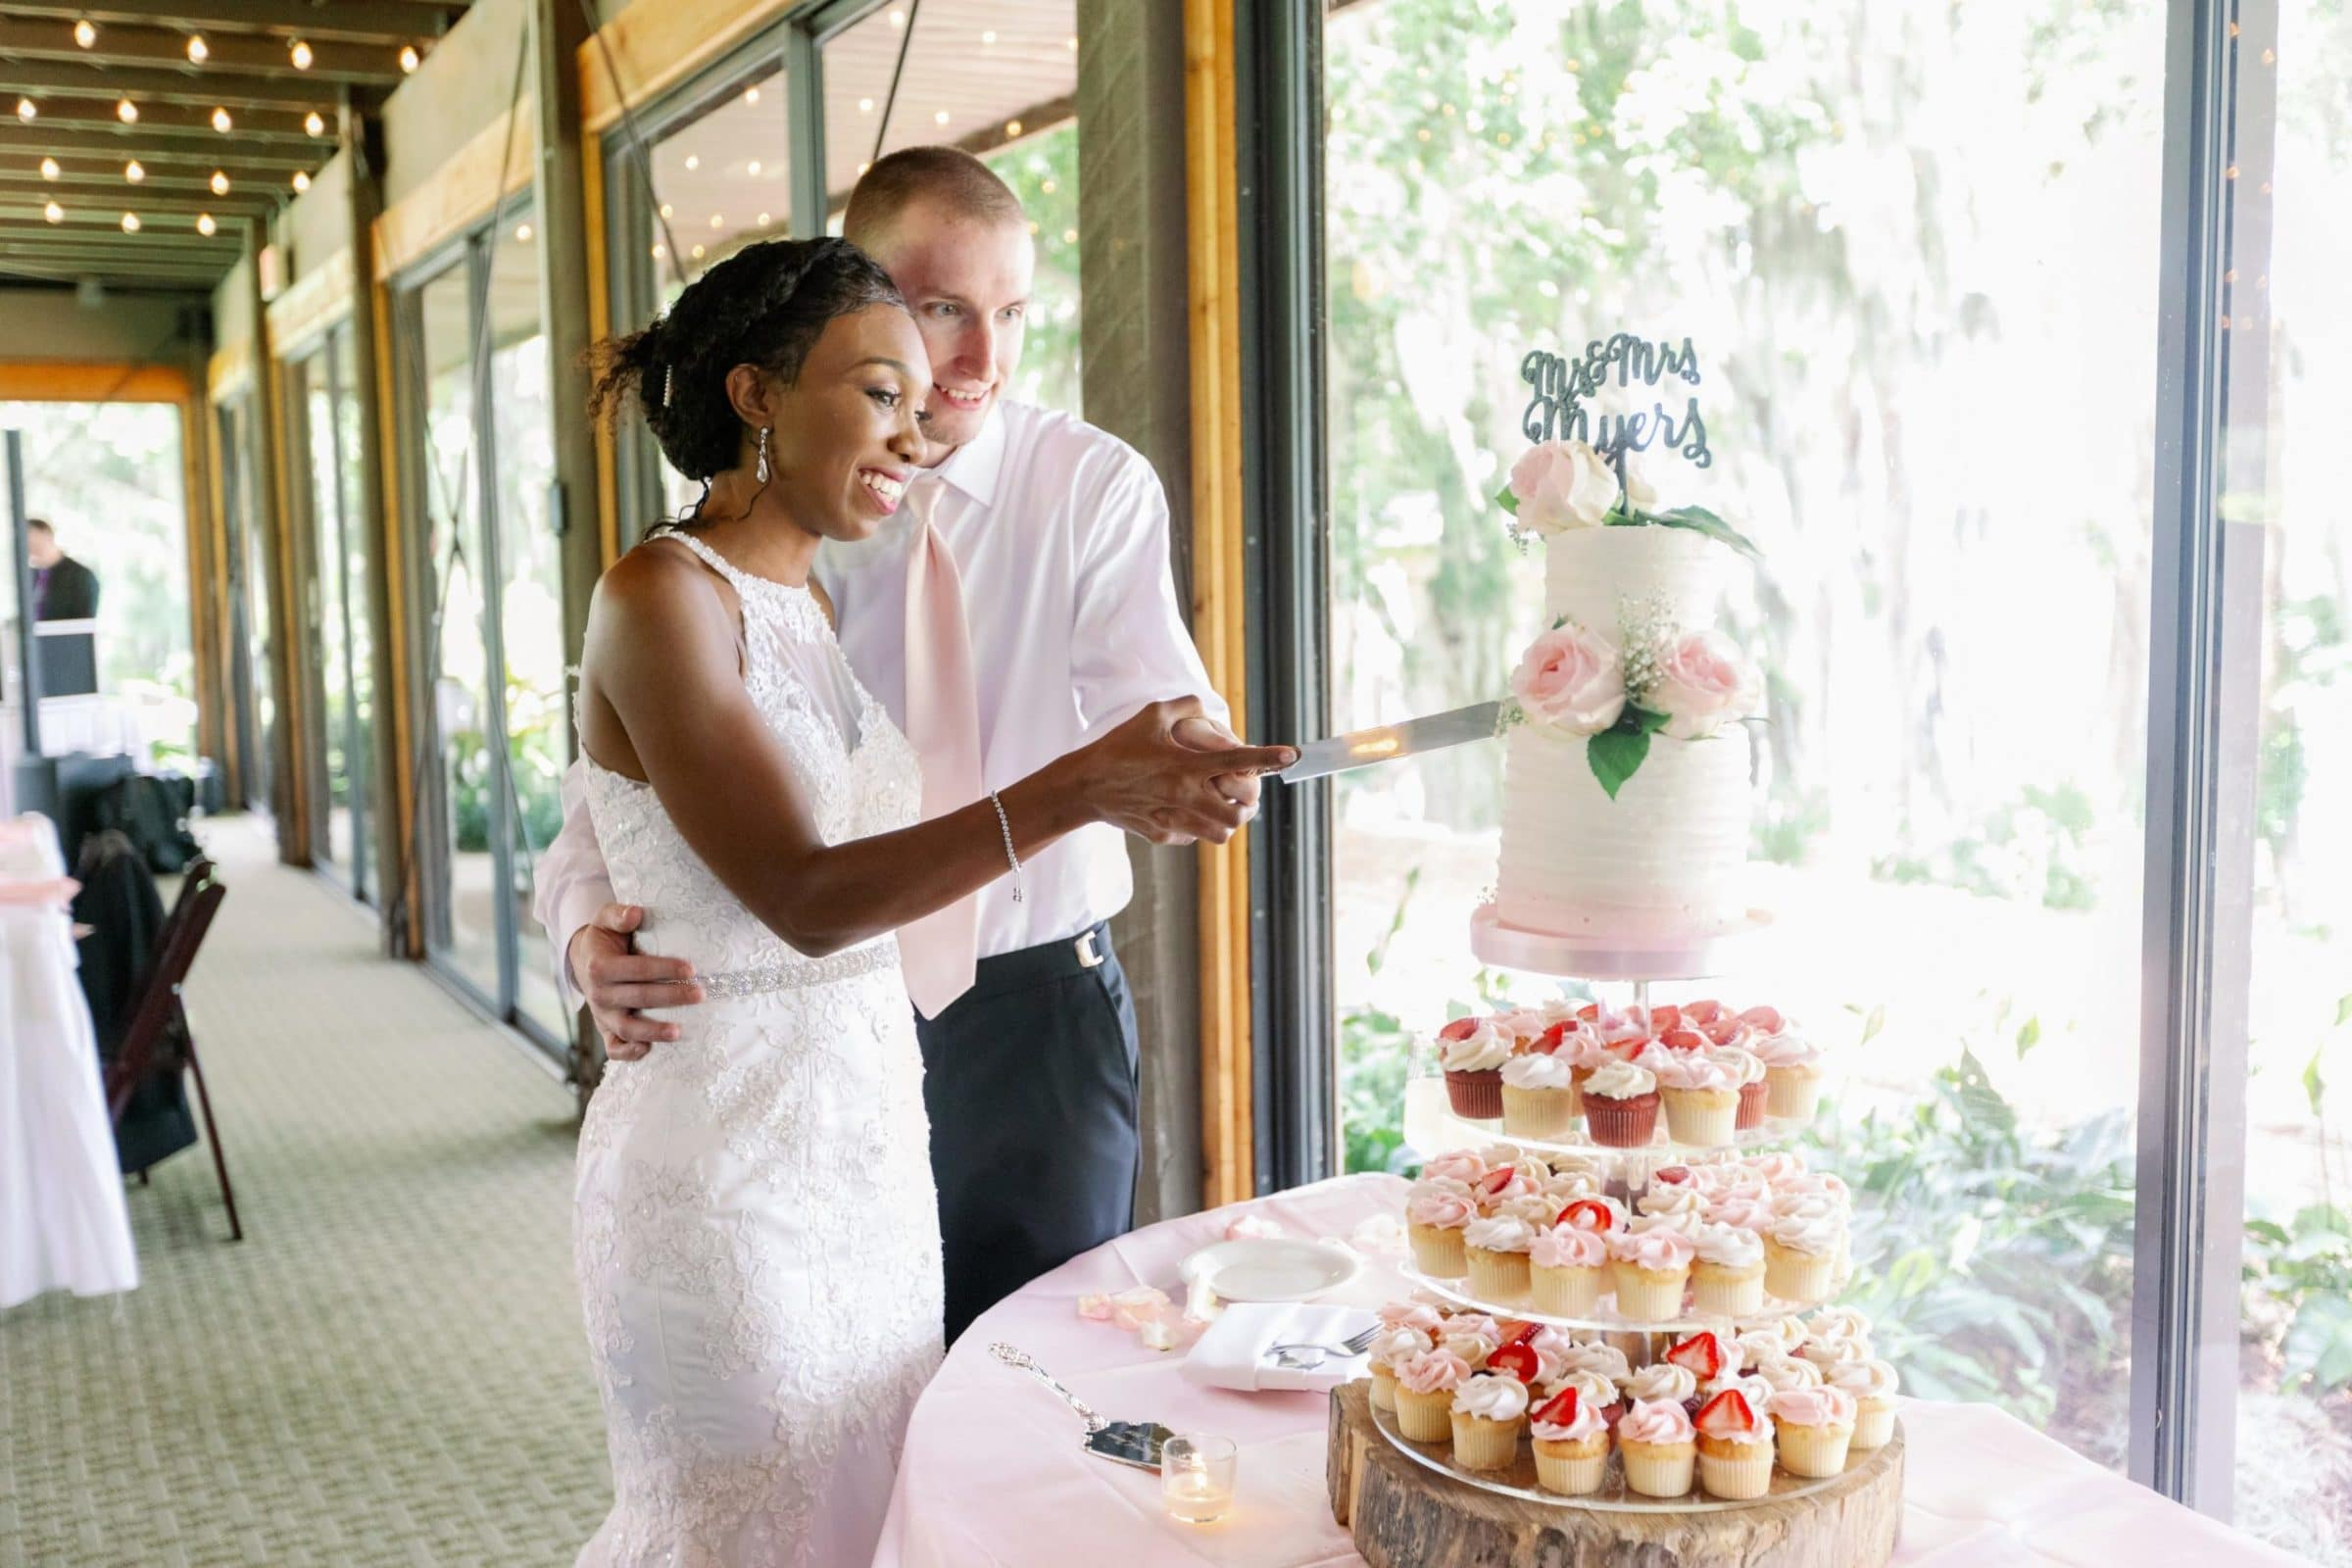 bride and groom cutting wedding cake in front of glass window overlooking lake